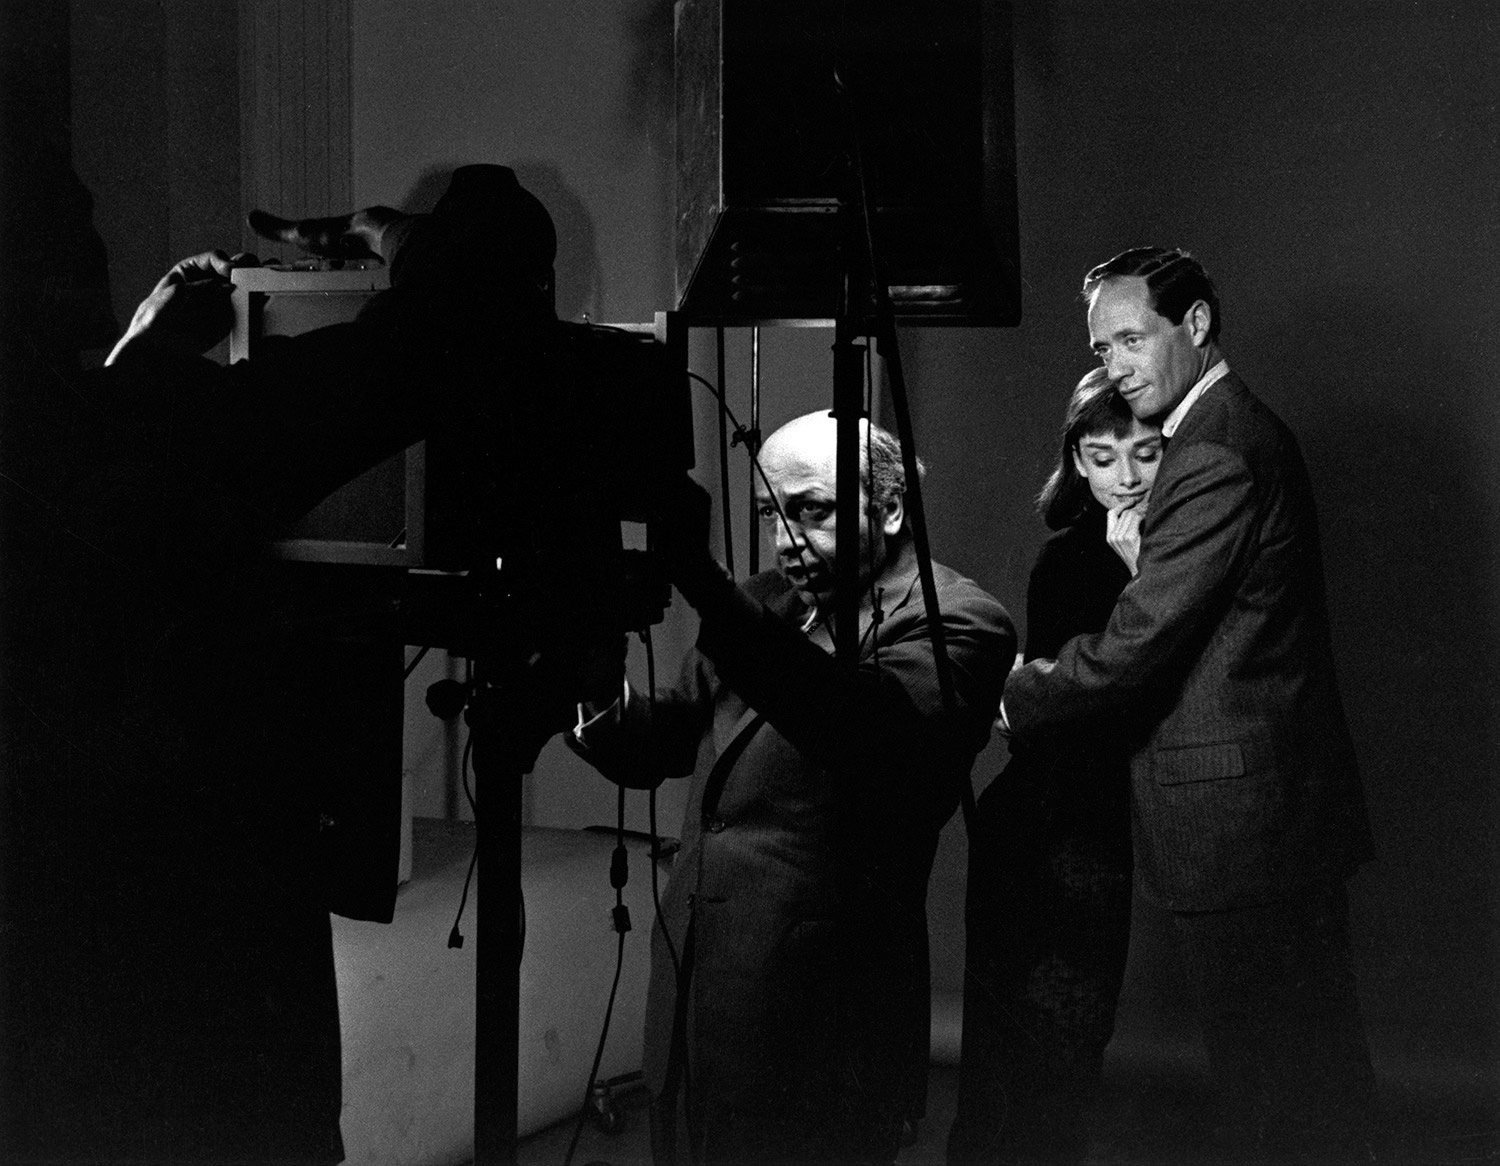 Audrey Hepburn and Mel Ferrer being photographed by Yousuf Karsh circa 1957 © 1978 Bill Avery / mptvimages.com